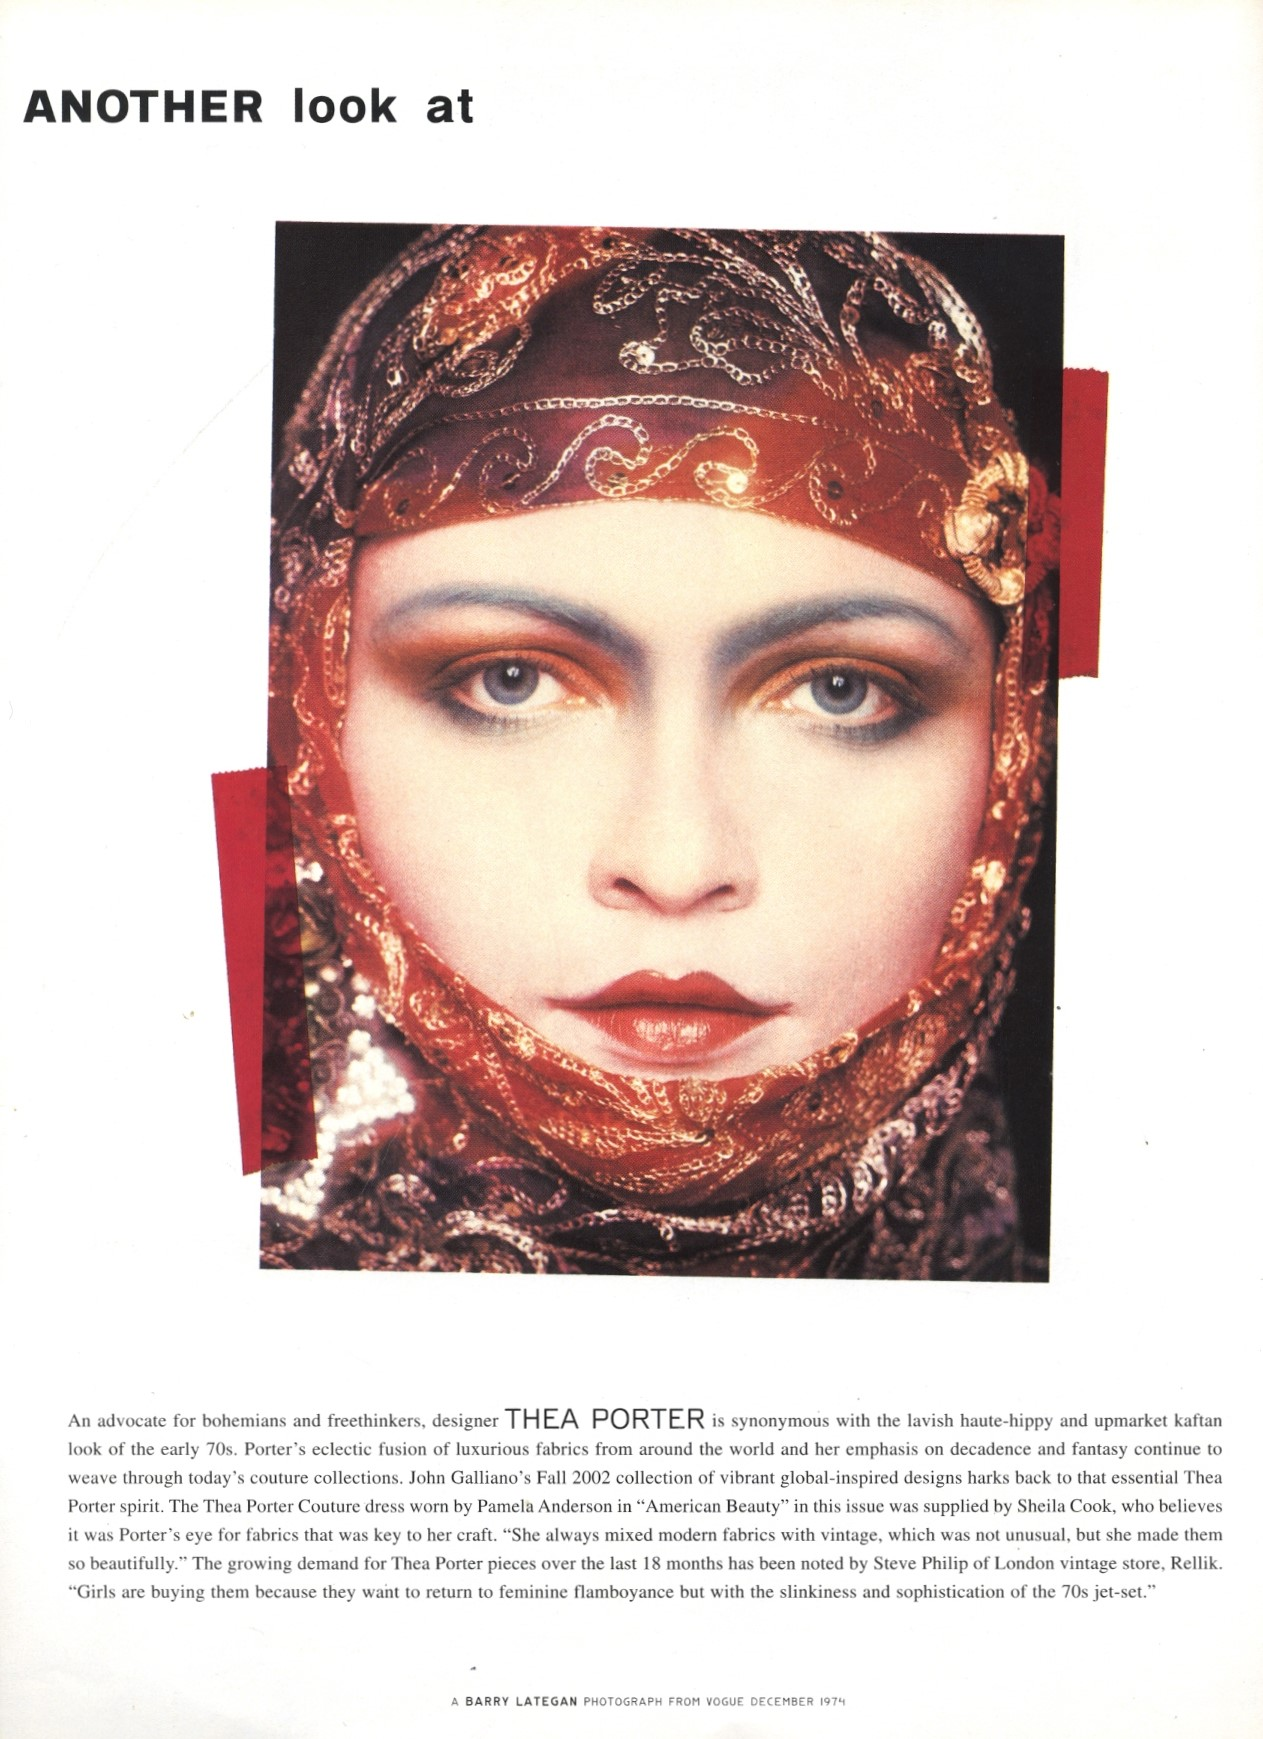 thea porter photography barry lategan vogue december 1974 another magazine issue 3 autumn winter 2002